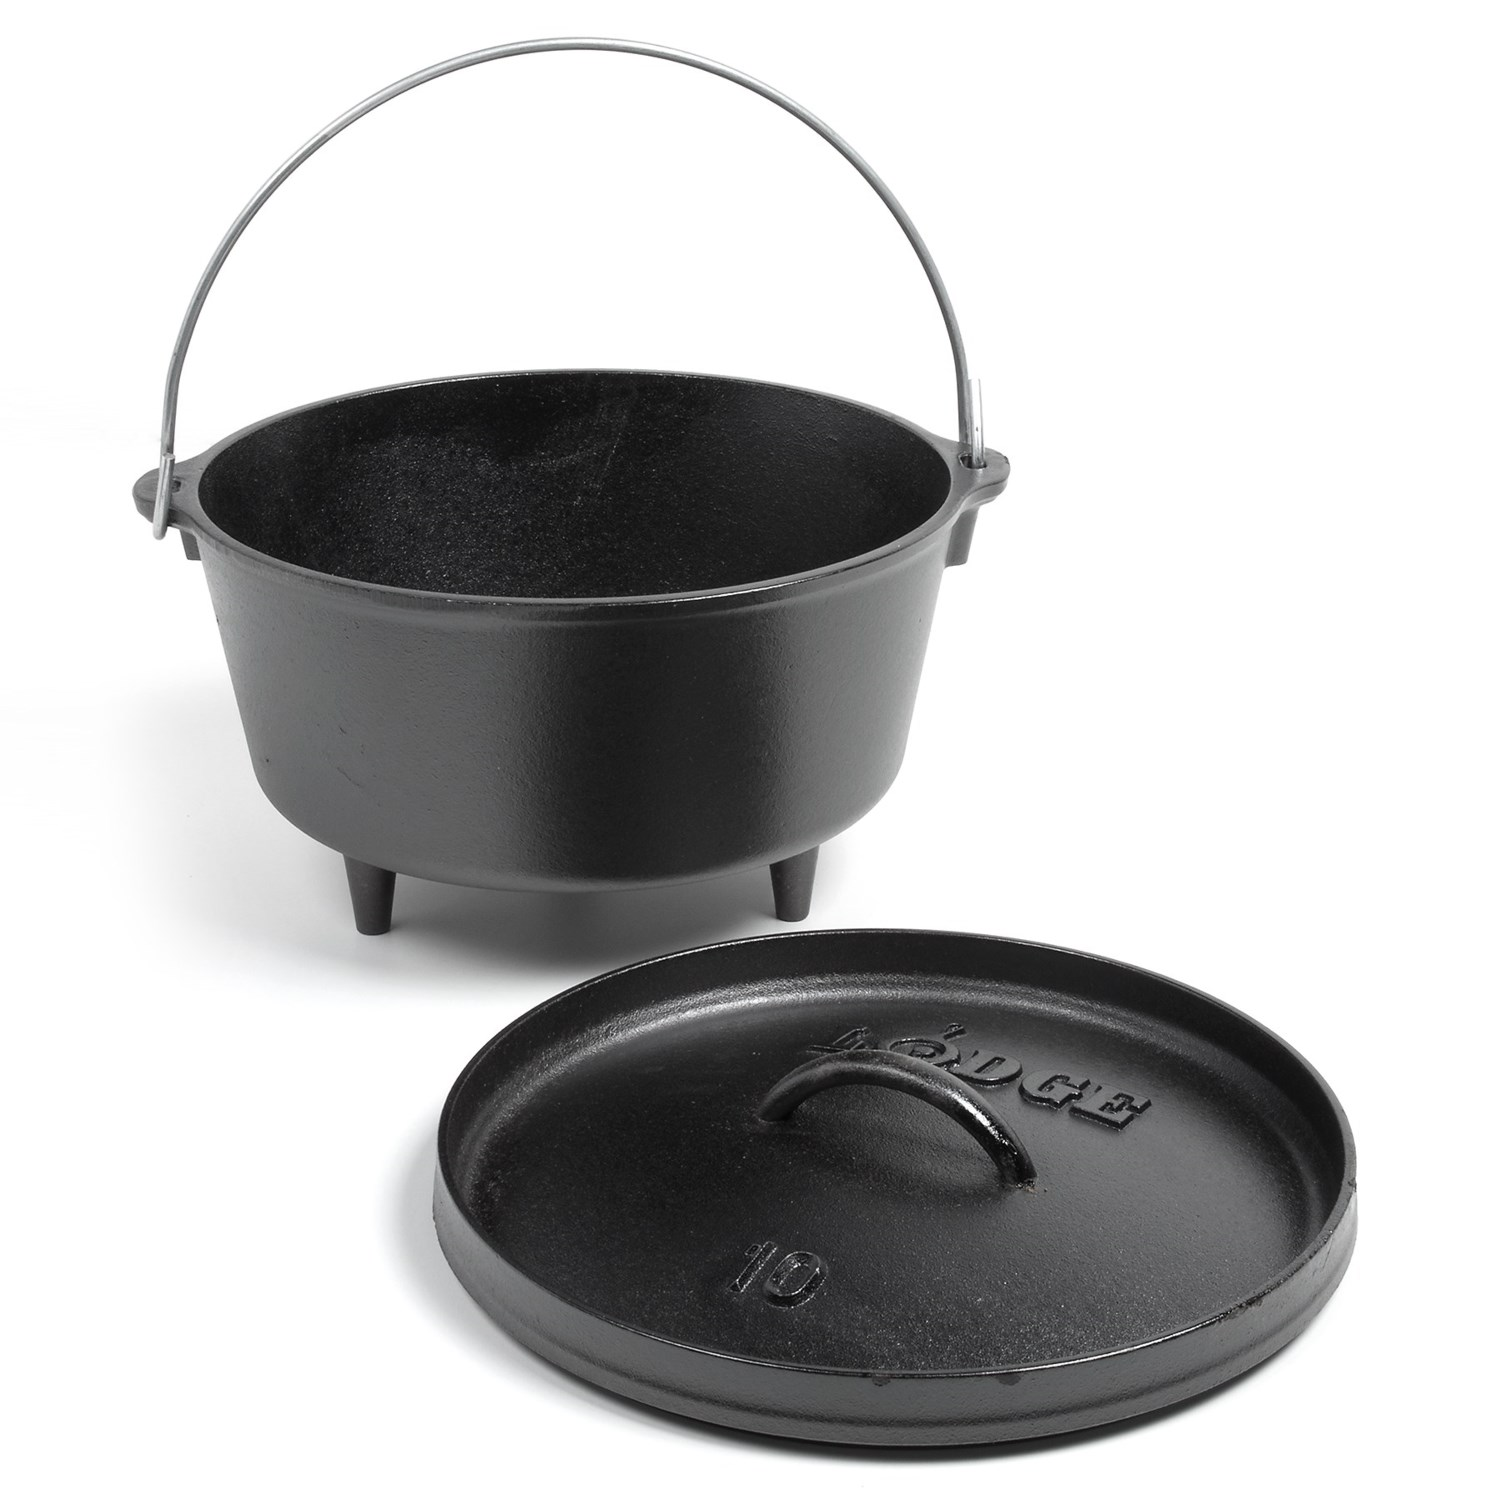 lodge deep camp dutch oven cast iron 5 qt save 43. Black Bedroom Furniture Sets. Home Design Ideas